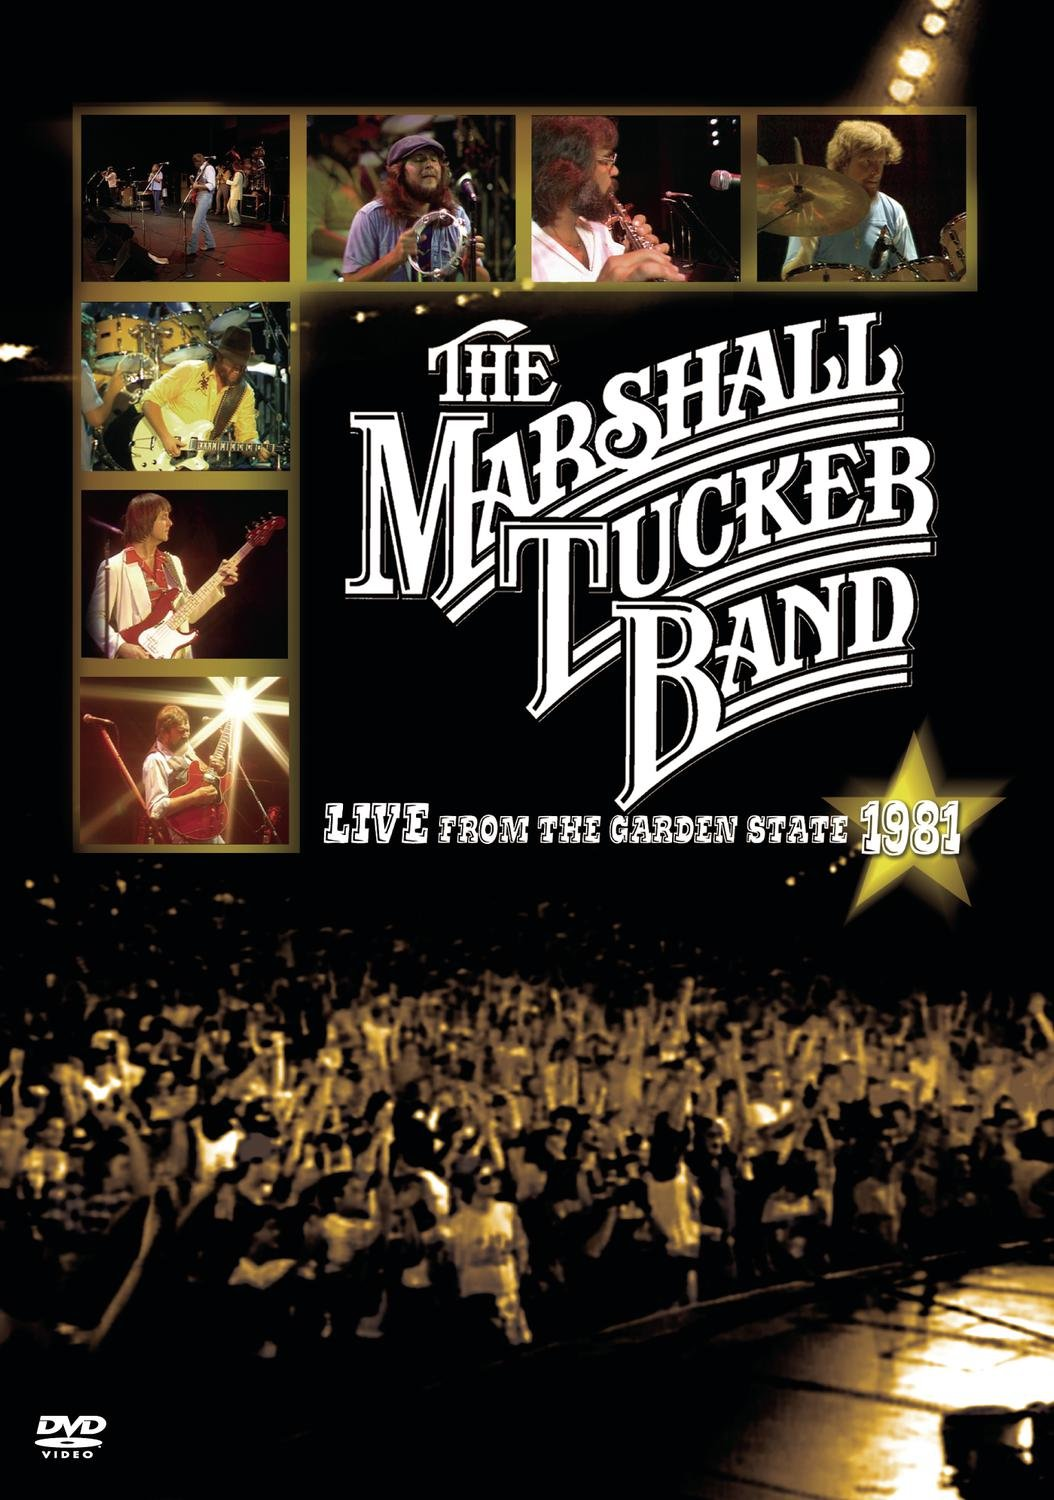 The Marshall Tucker Band - Live From the Garden State 1981 by Sony Music Video